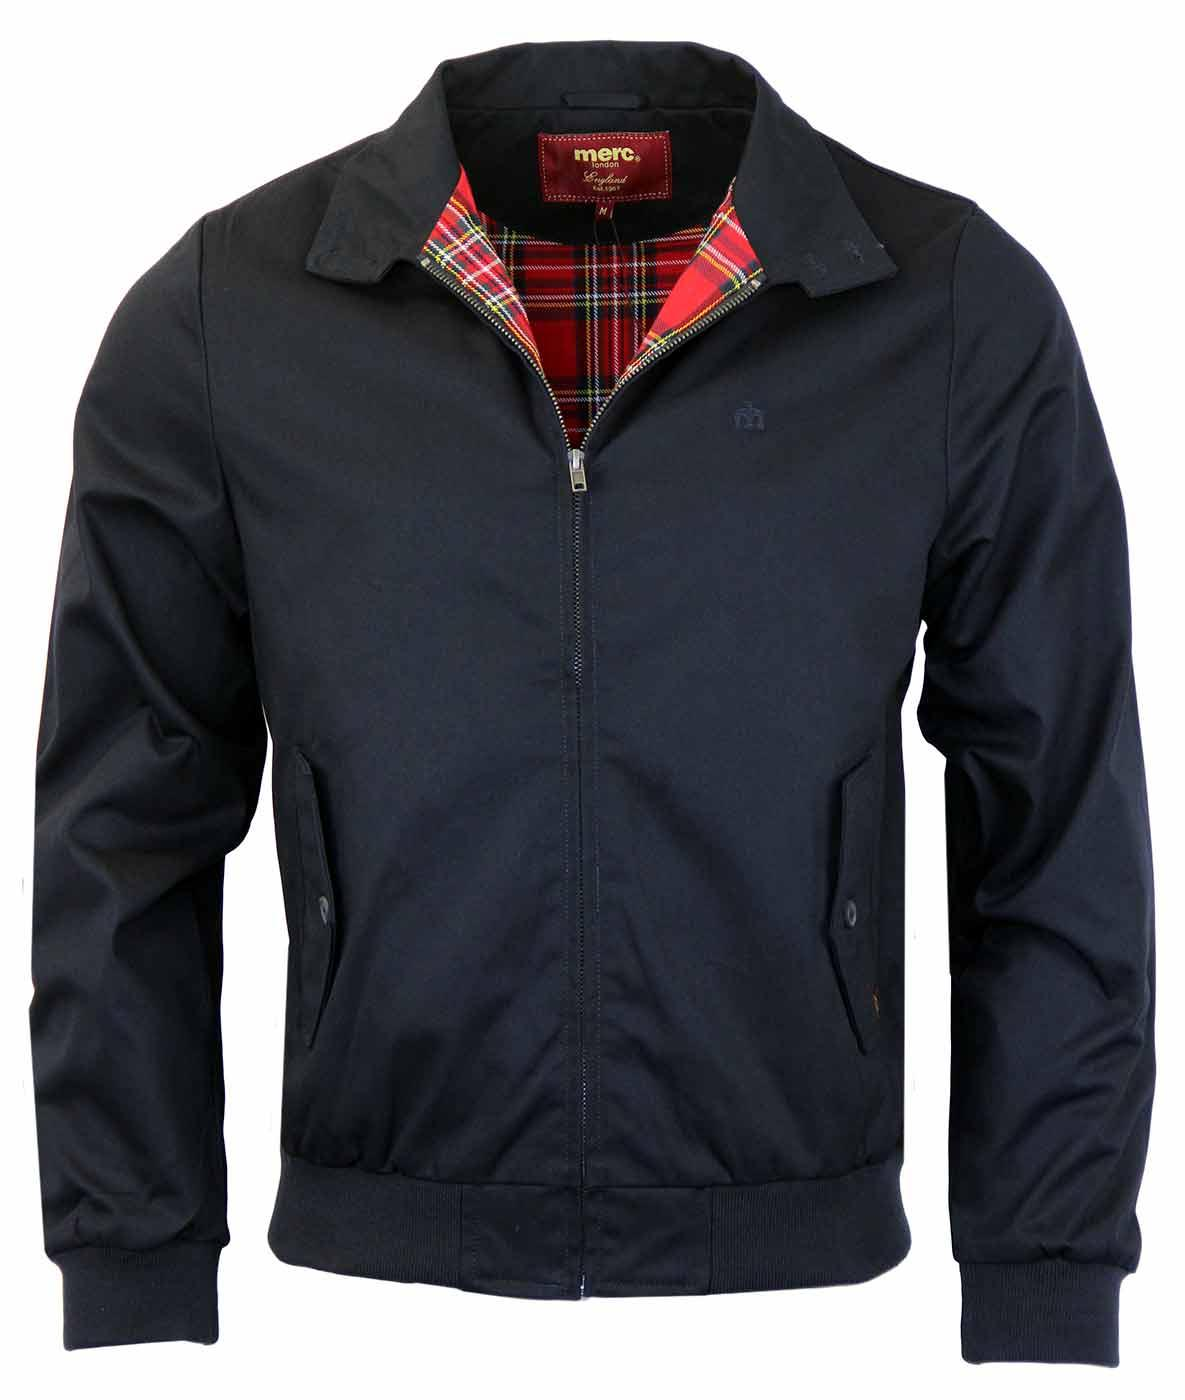 MERC Mens Retro Indie Mod Harrington Jacket (N)